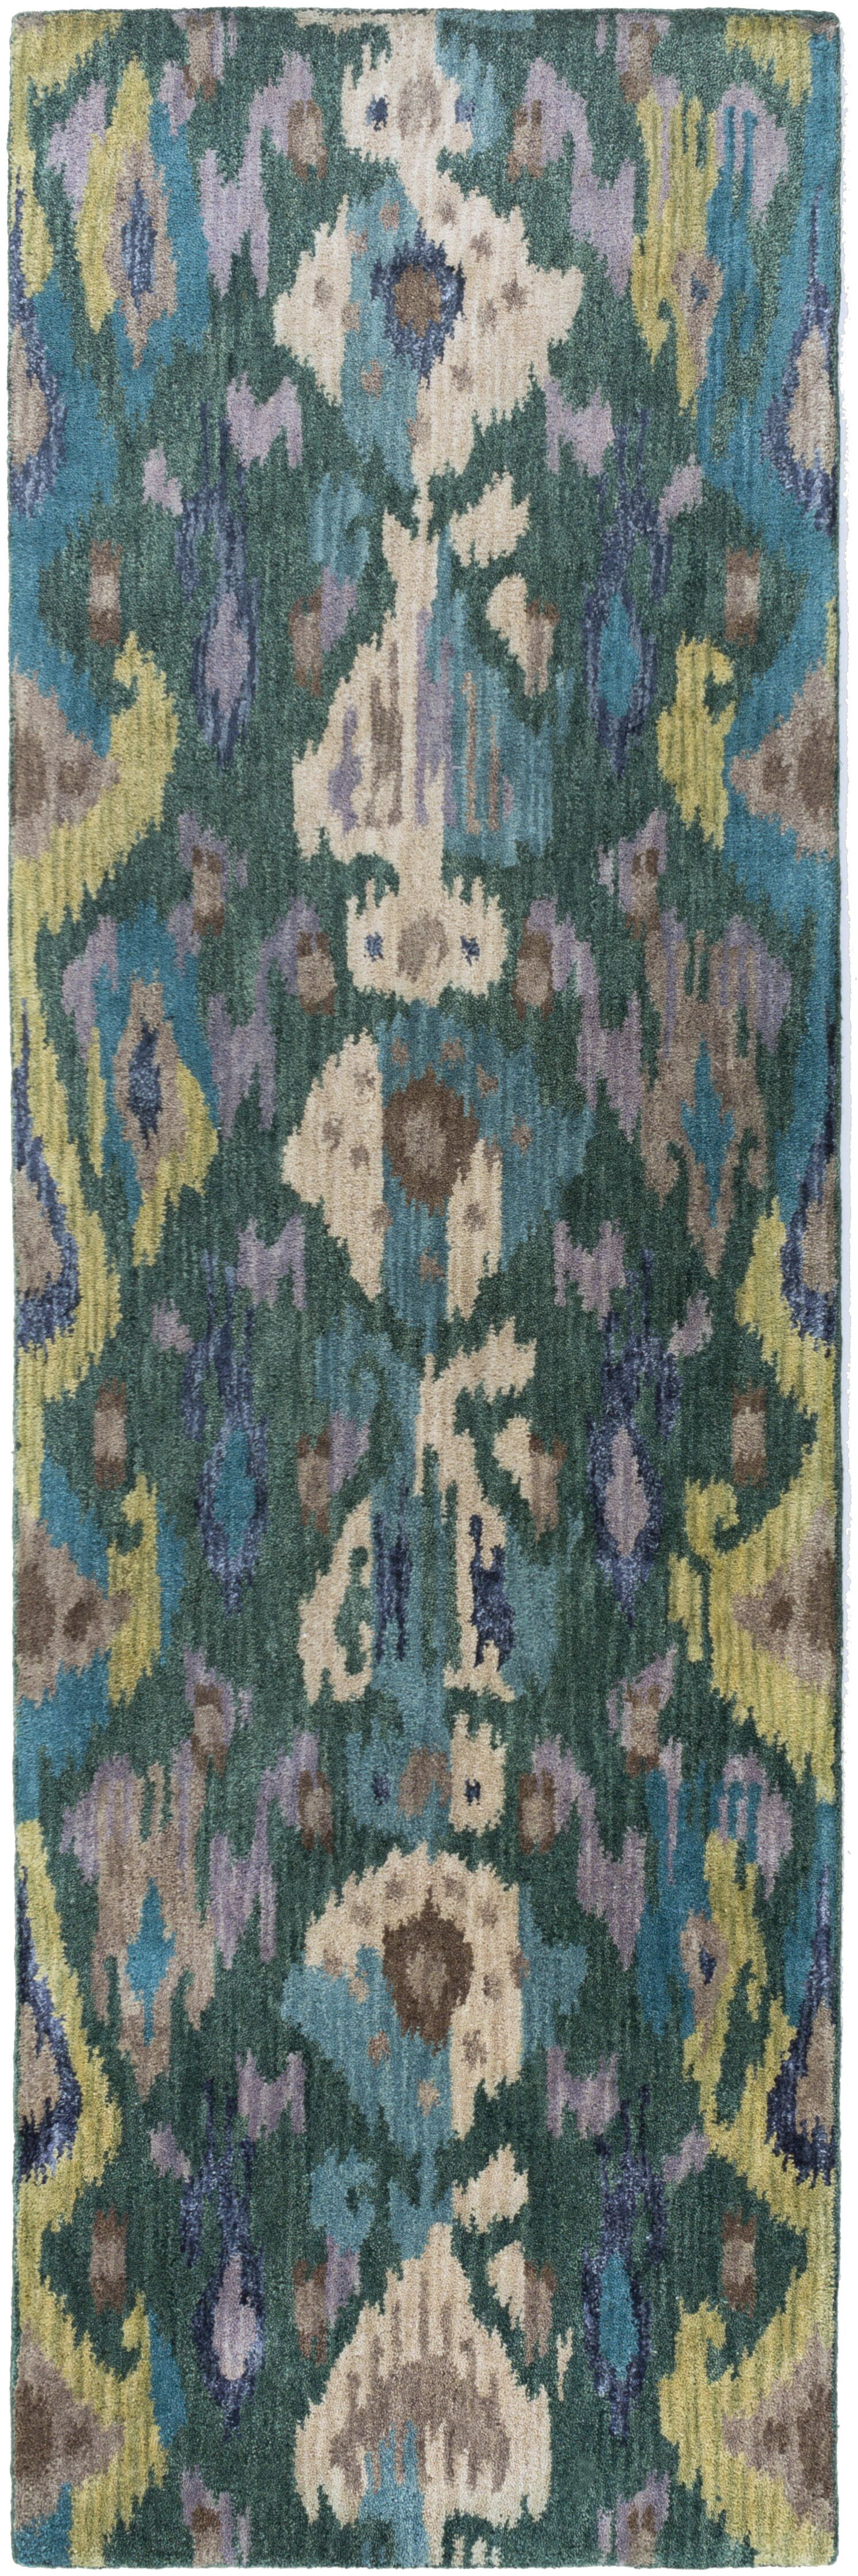 Bower Teal Ikat/Suzani Area Rug Rug Size: Runner 2'6